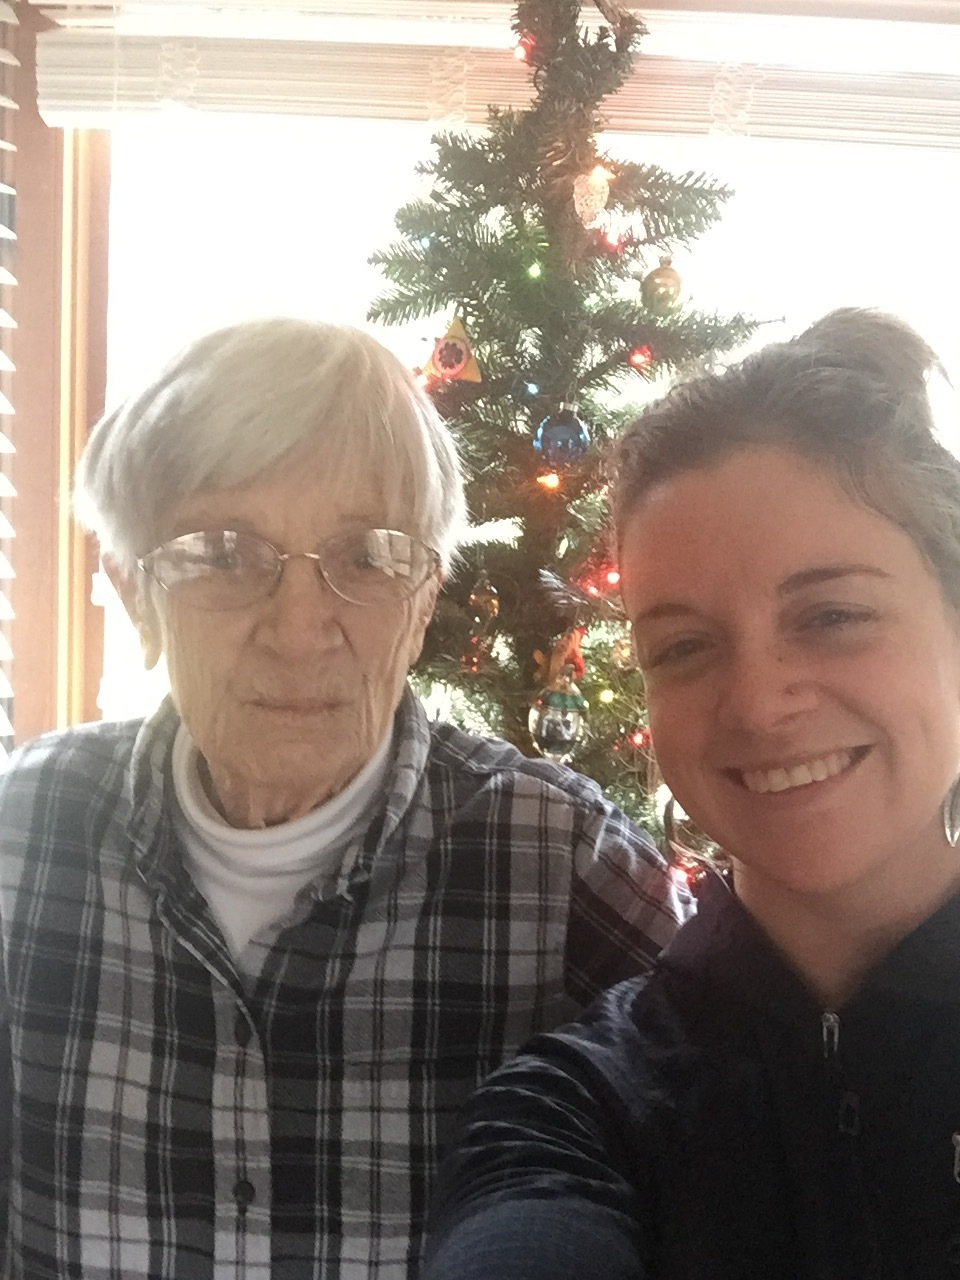 """Grandma, let's take a selfie with your Christmas tree!"" (continuing traditions)"